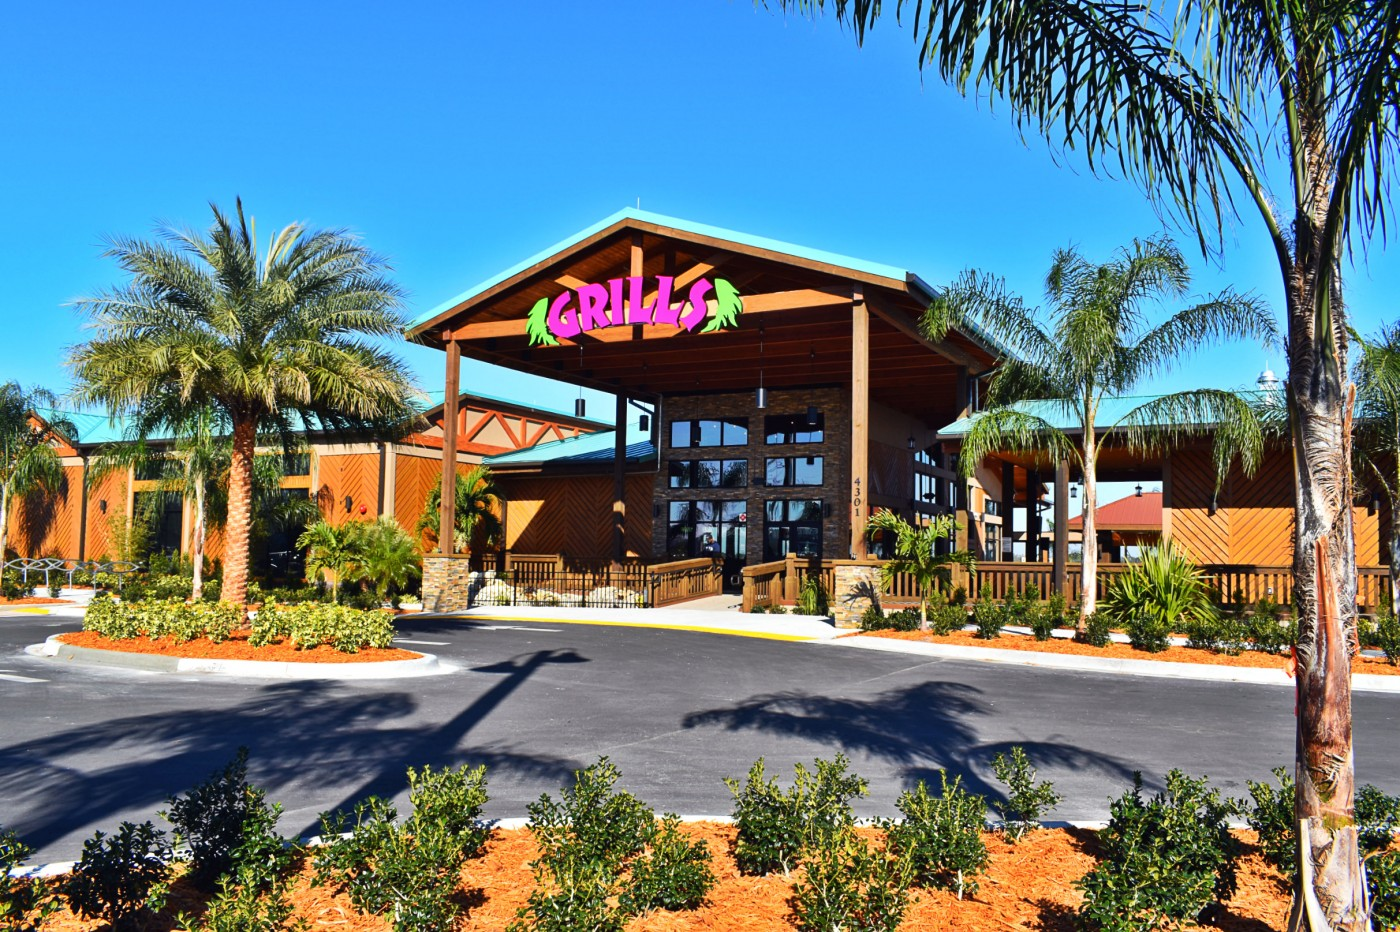 Grills Lakeside Waterfront Seafood Restaurant Near Winter Park Orlando Florida